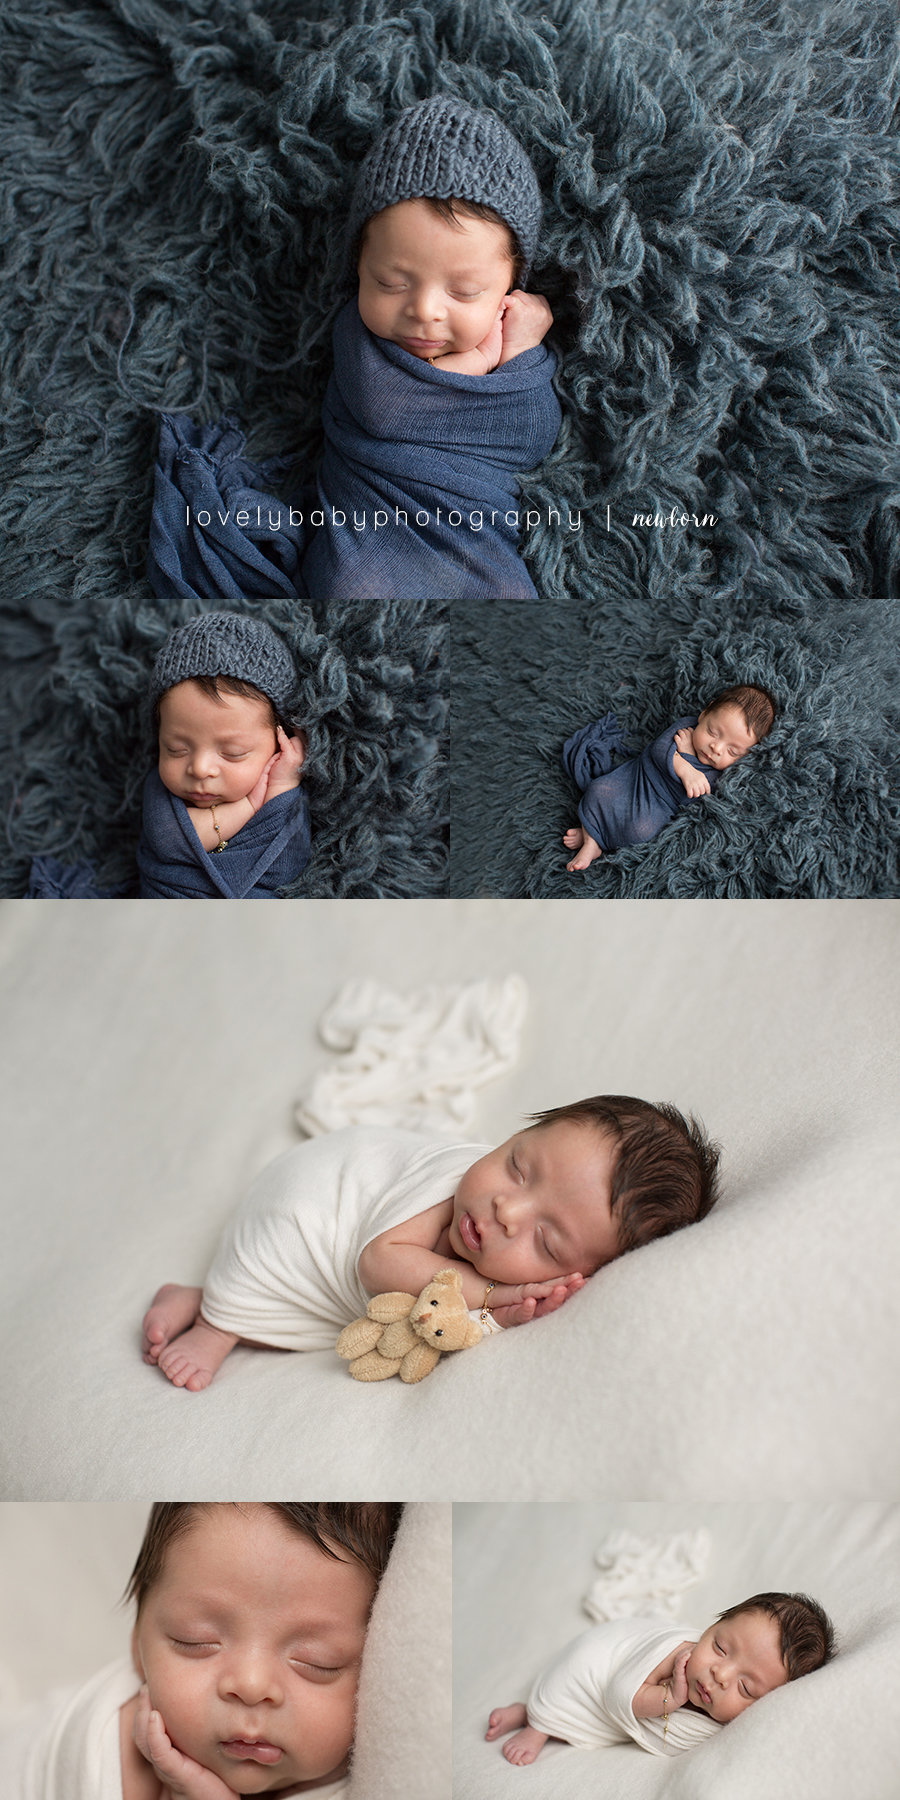 encinitas newborn photography 1.jpg